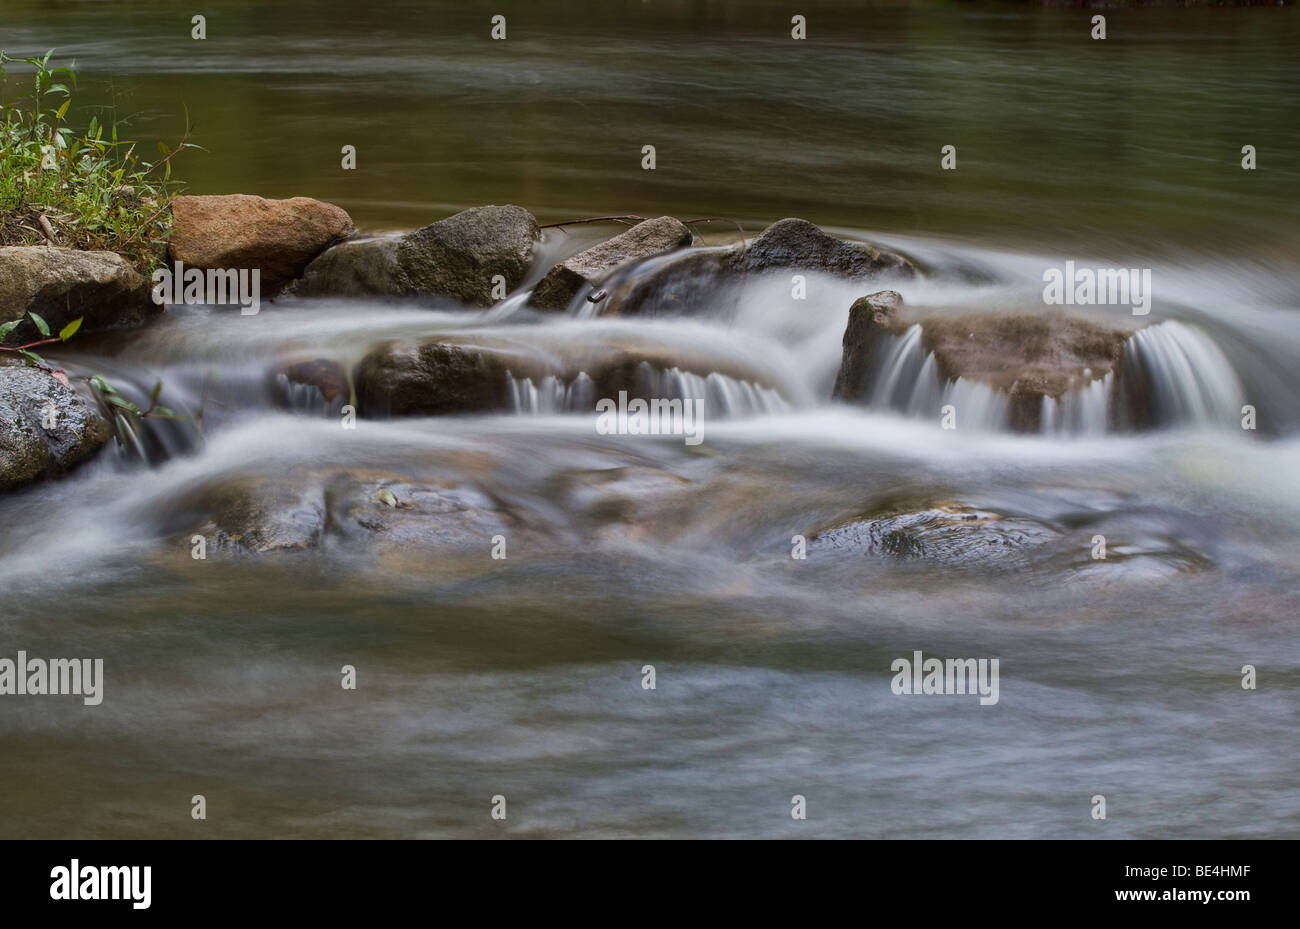 great image of water on rocks in the stream or river - Stock Image